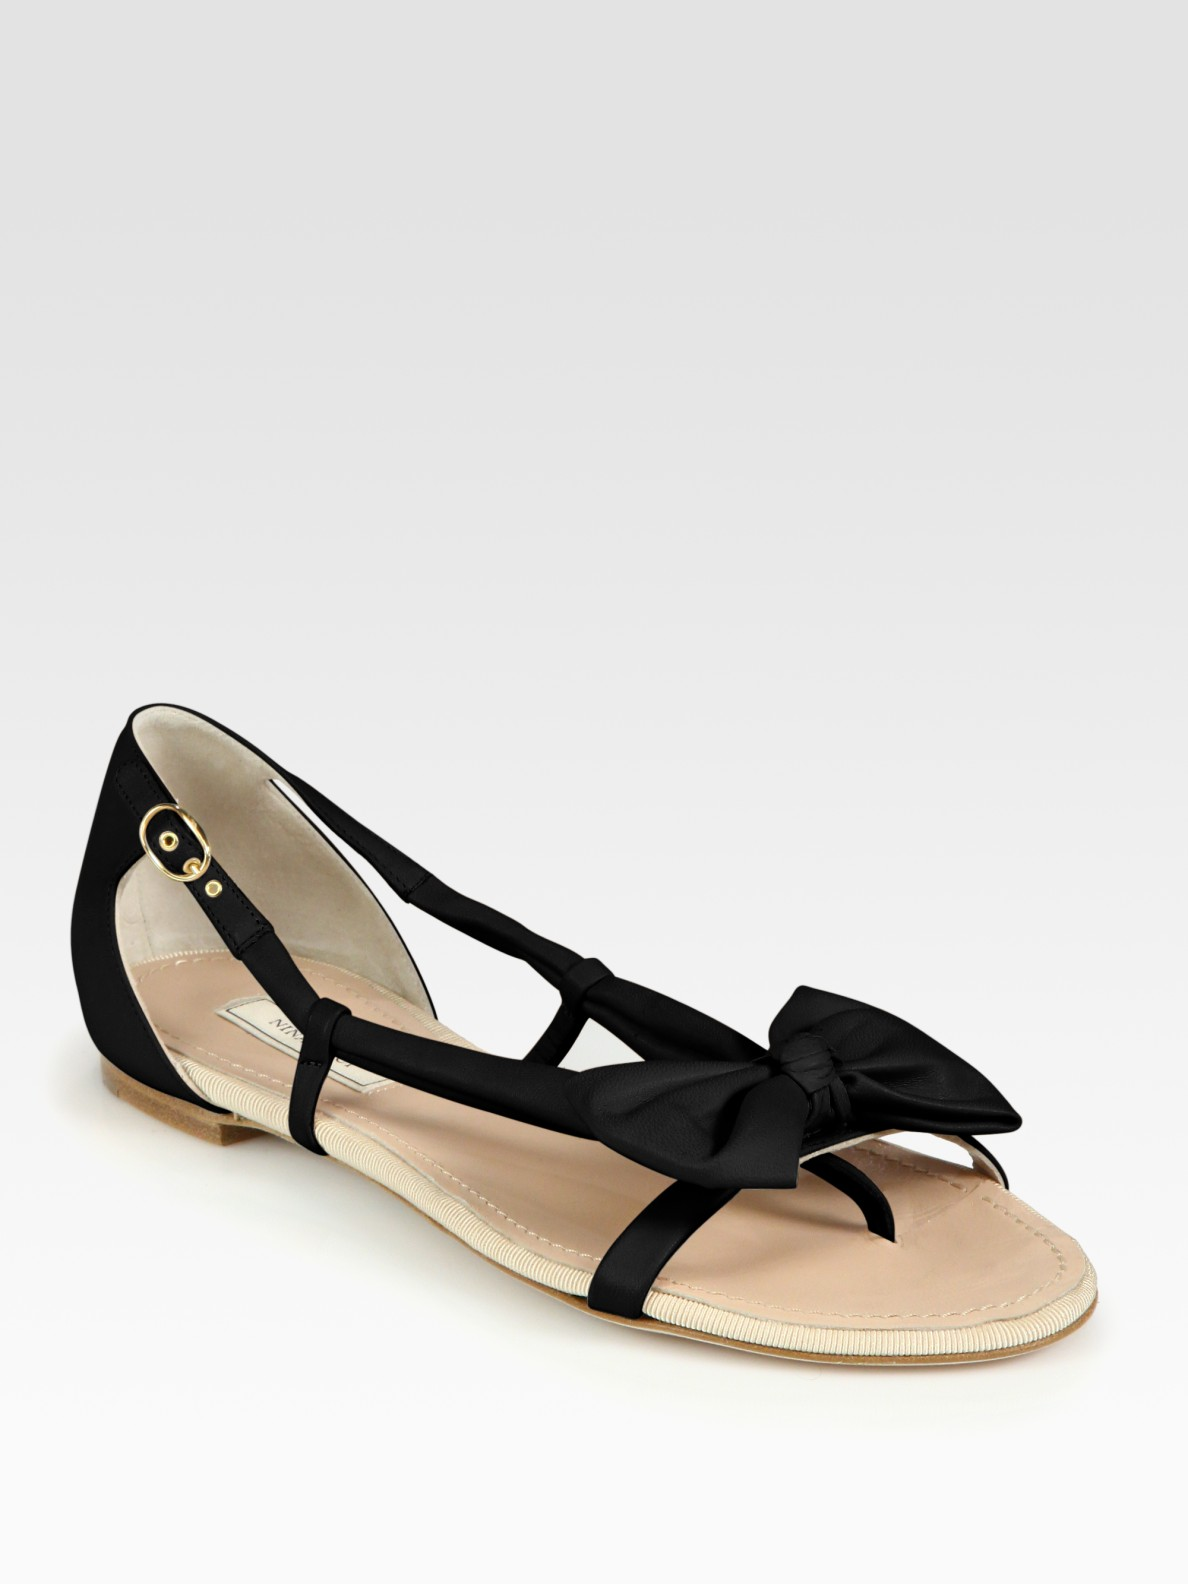 outlet top quality discount looking for Nina Ricci Bow Slide Sandals sale online shopping o4NyH